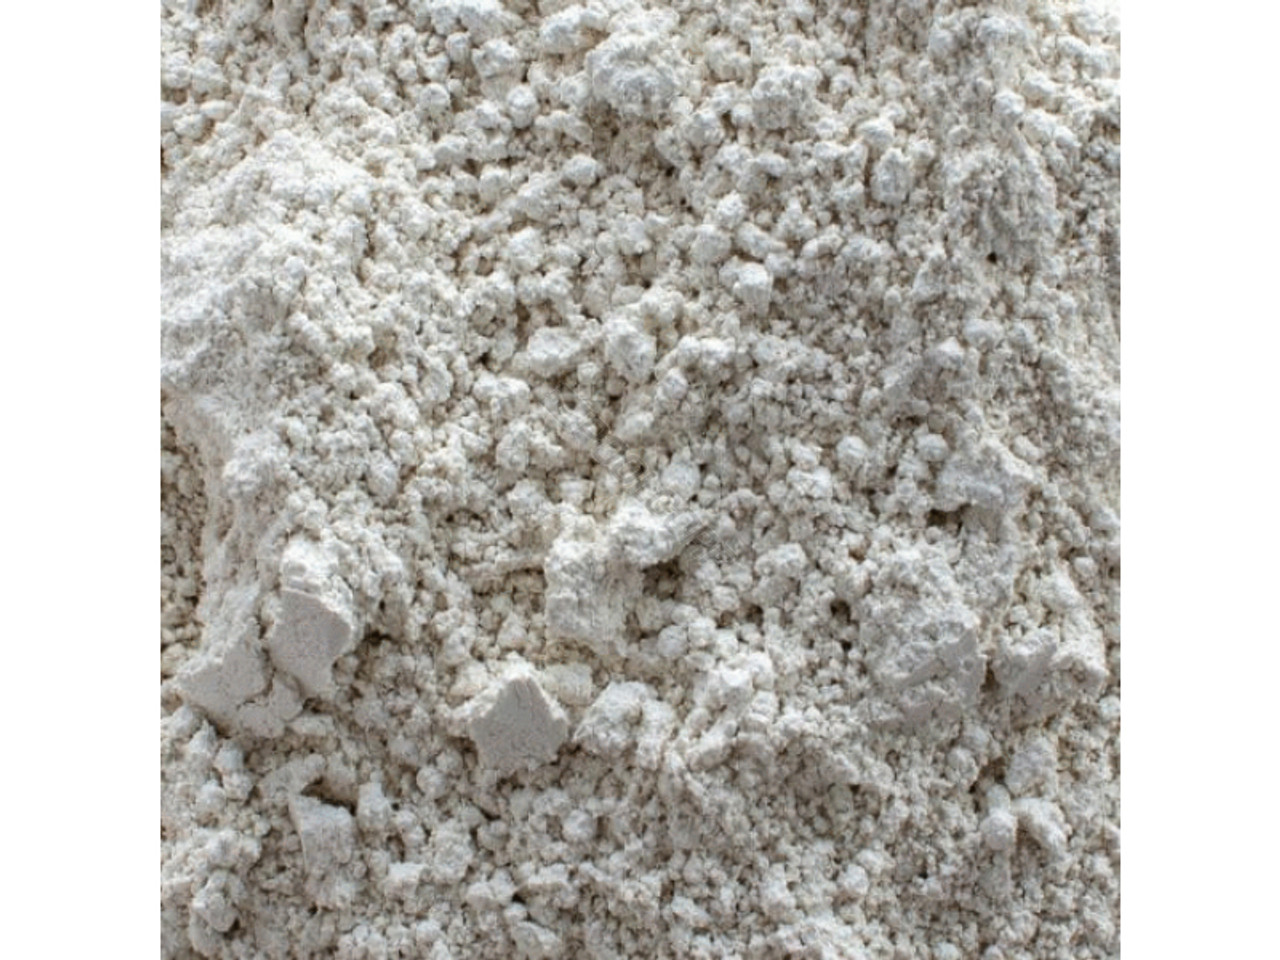 Celapool Low Dust Swimming Pool 6 De Filter Diatomaceous Earth Powder Celapool 10 Qt Aaa 06 243 E Z Test Pool Supplies Trusted Since 1989